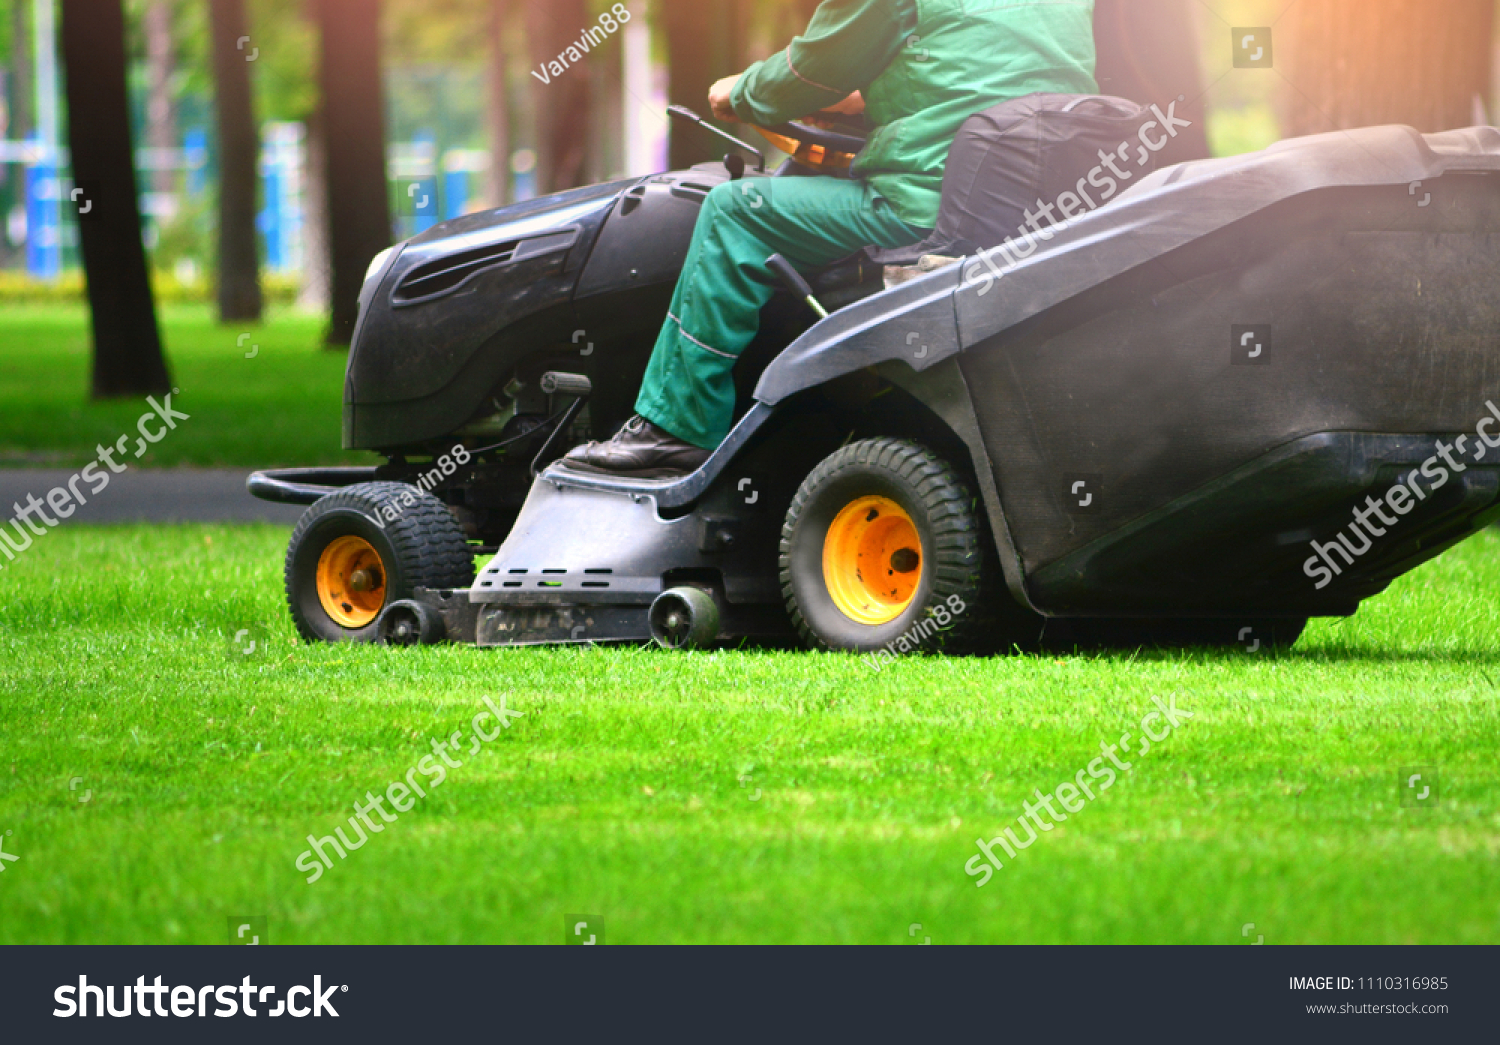 Professional lawn mower cuts the grass #1110316985